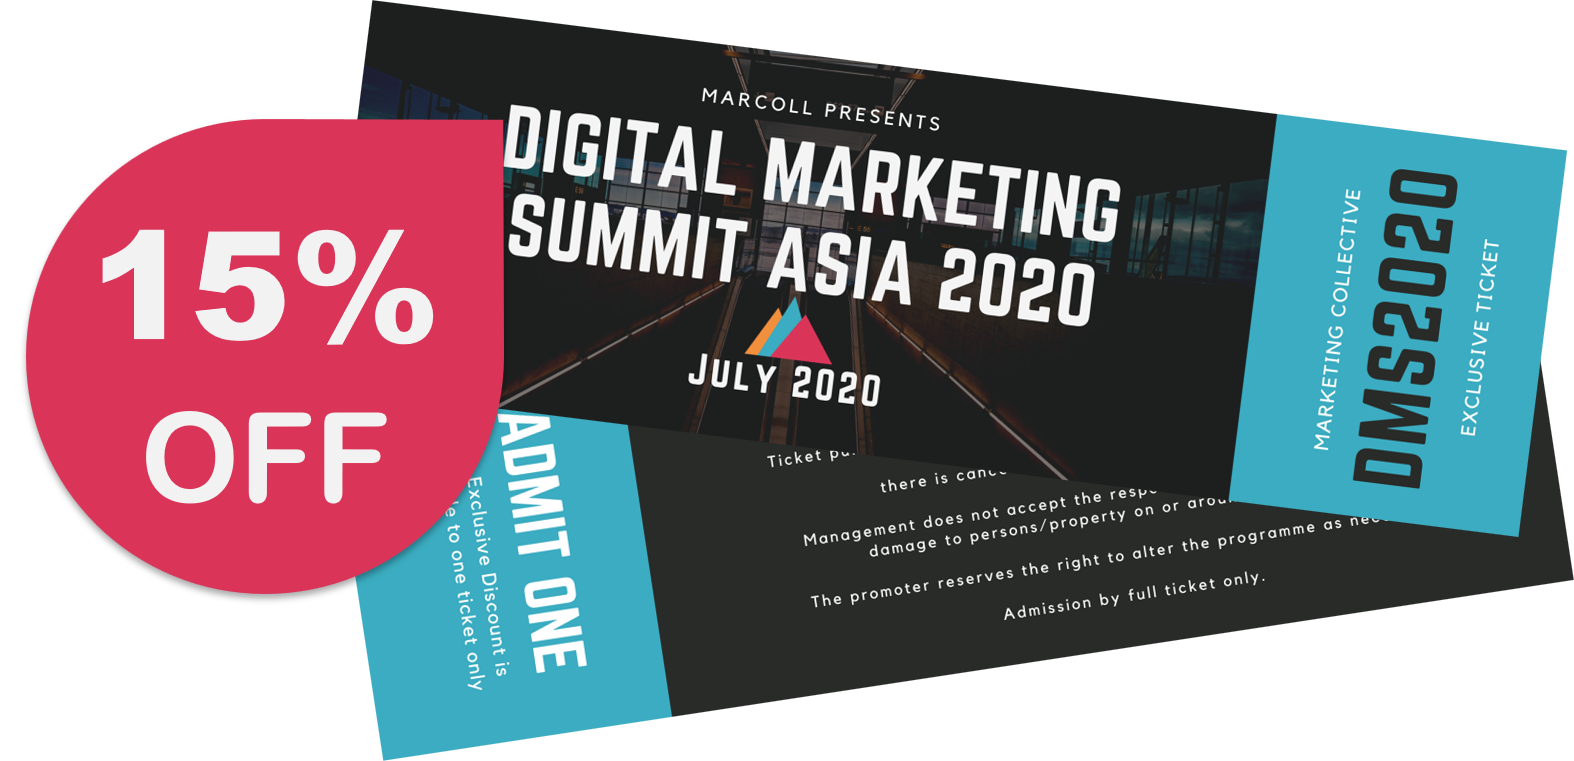 15% off Digitam Marketing Summit Asia 2020